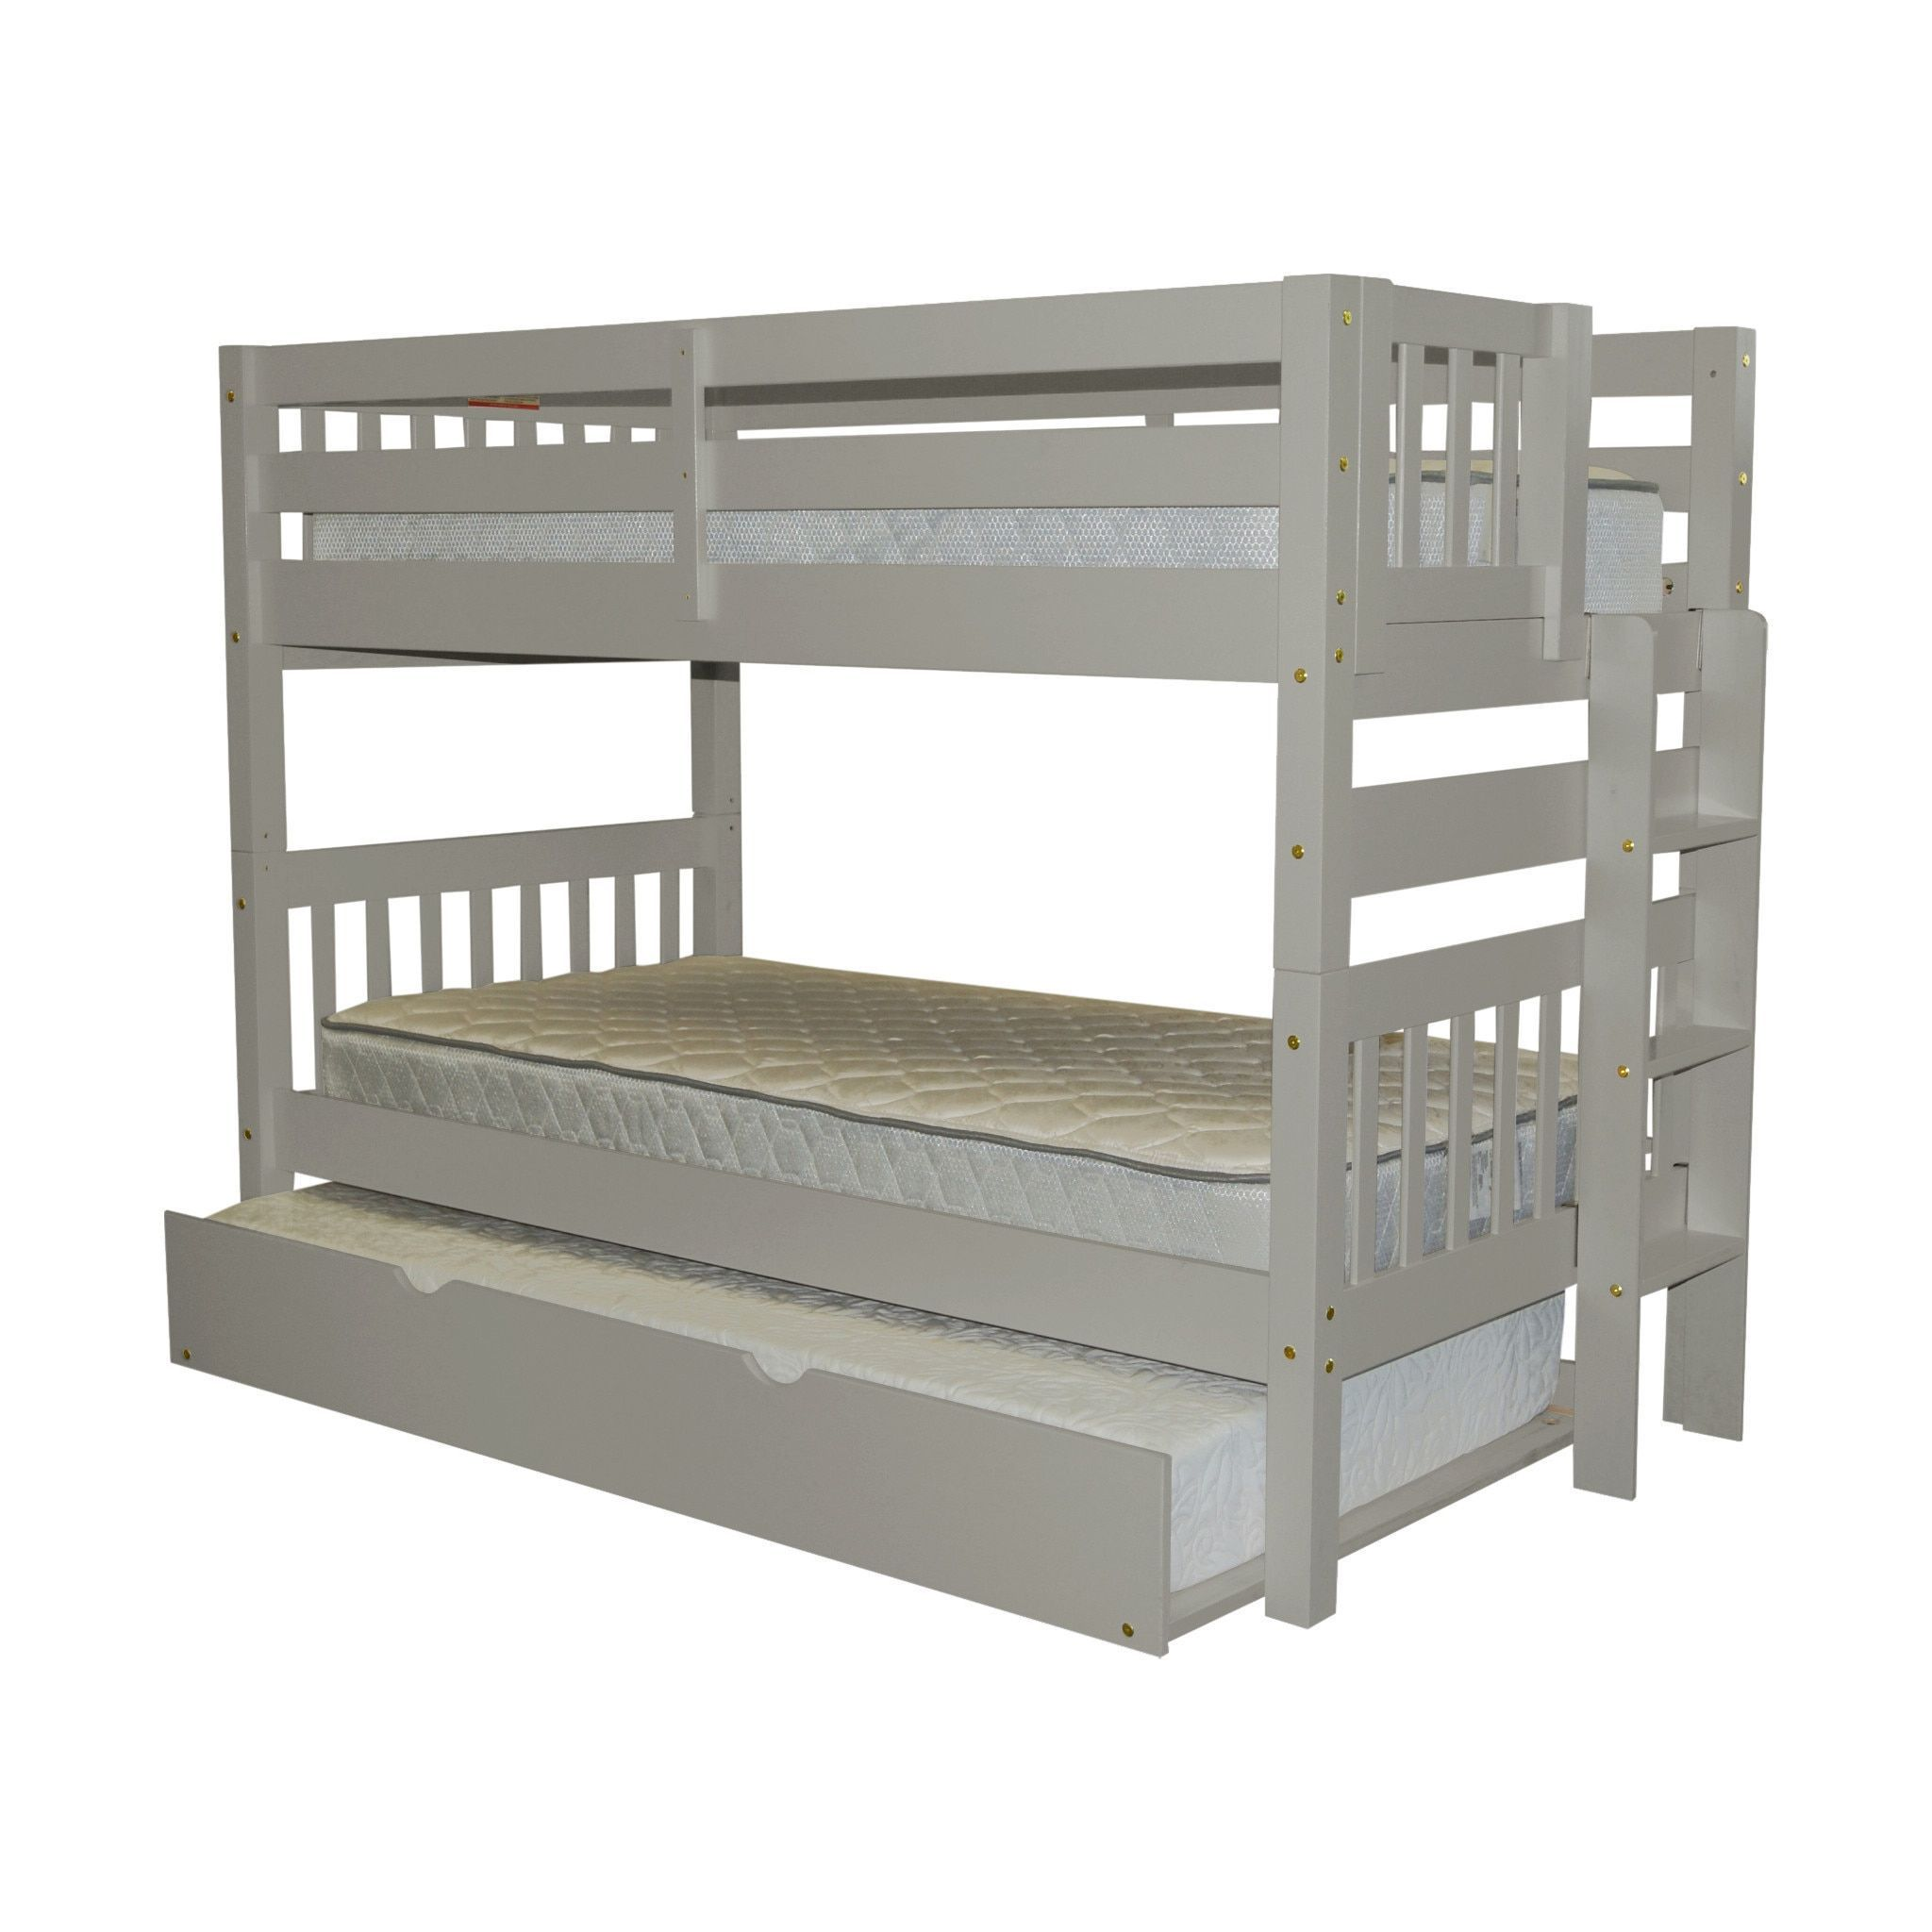 Camo loft bed with slide  Bedz King Bunk Bed Twin over Twin with End Ladder and a Twin Trundle